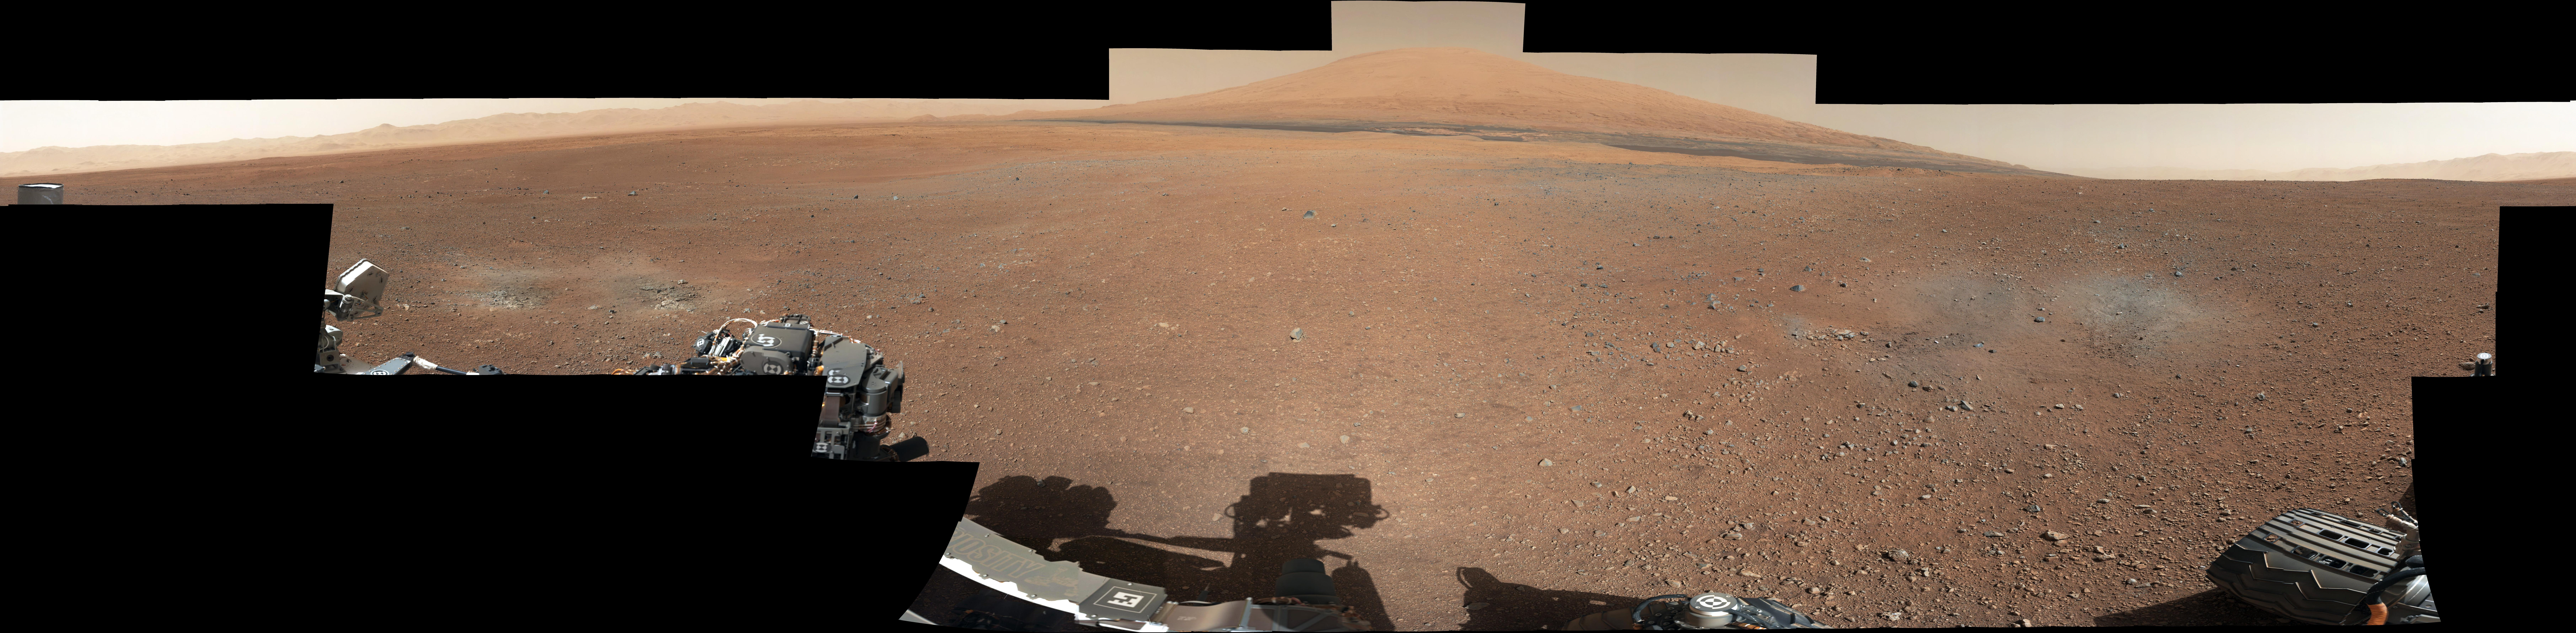 Mars Landing Site Panorama as photographed by Curiosity